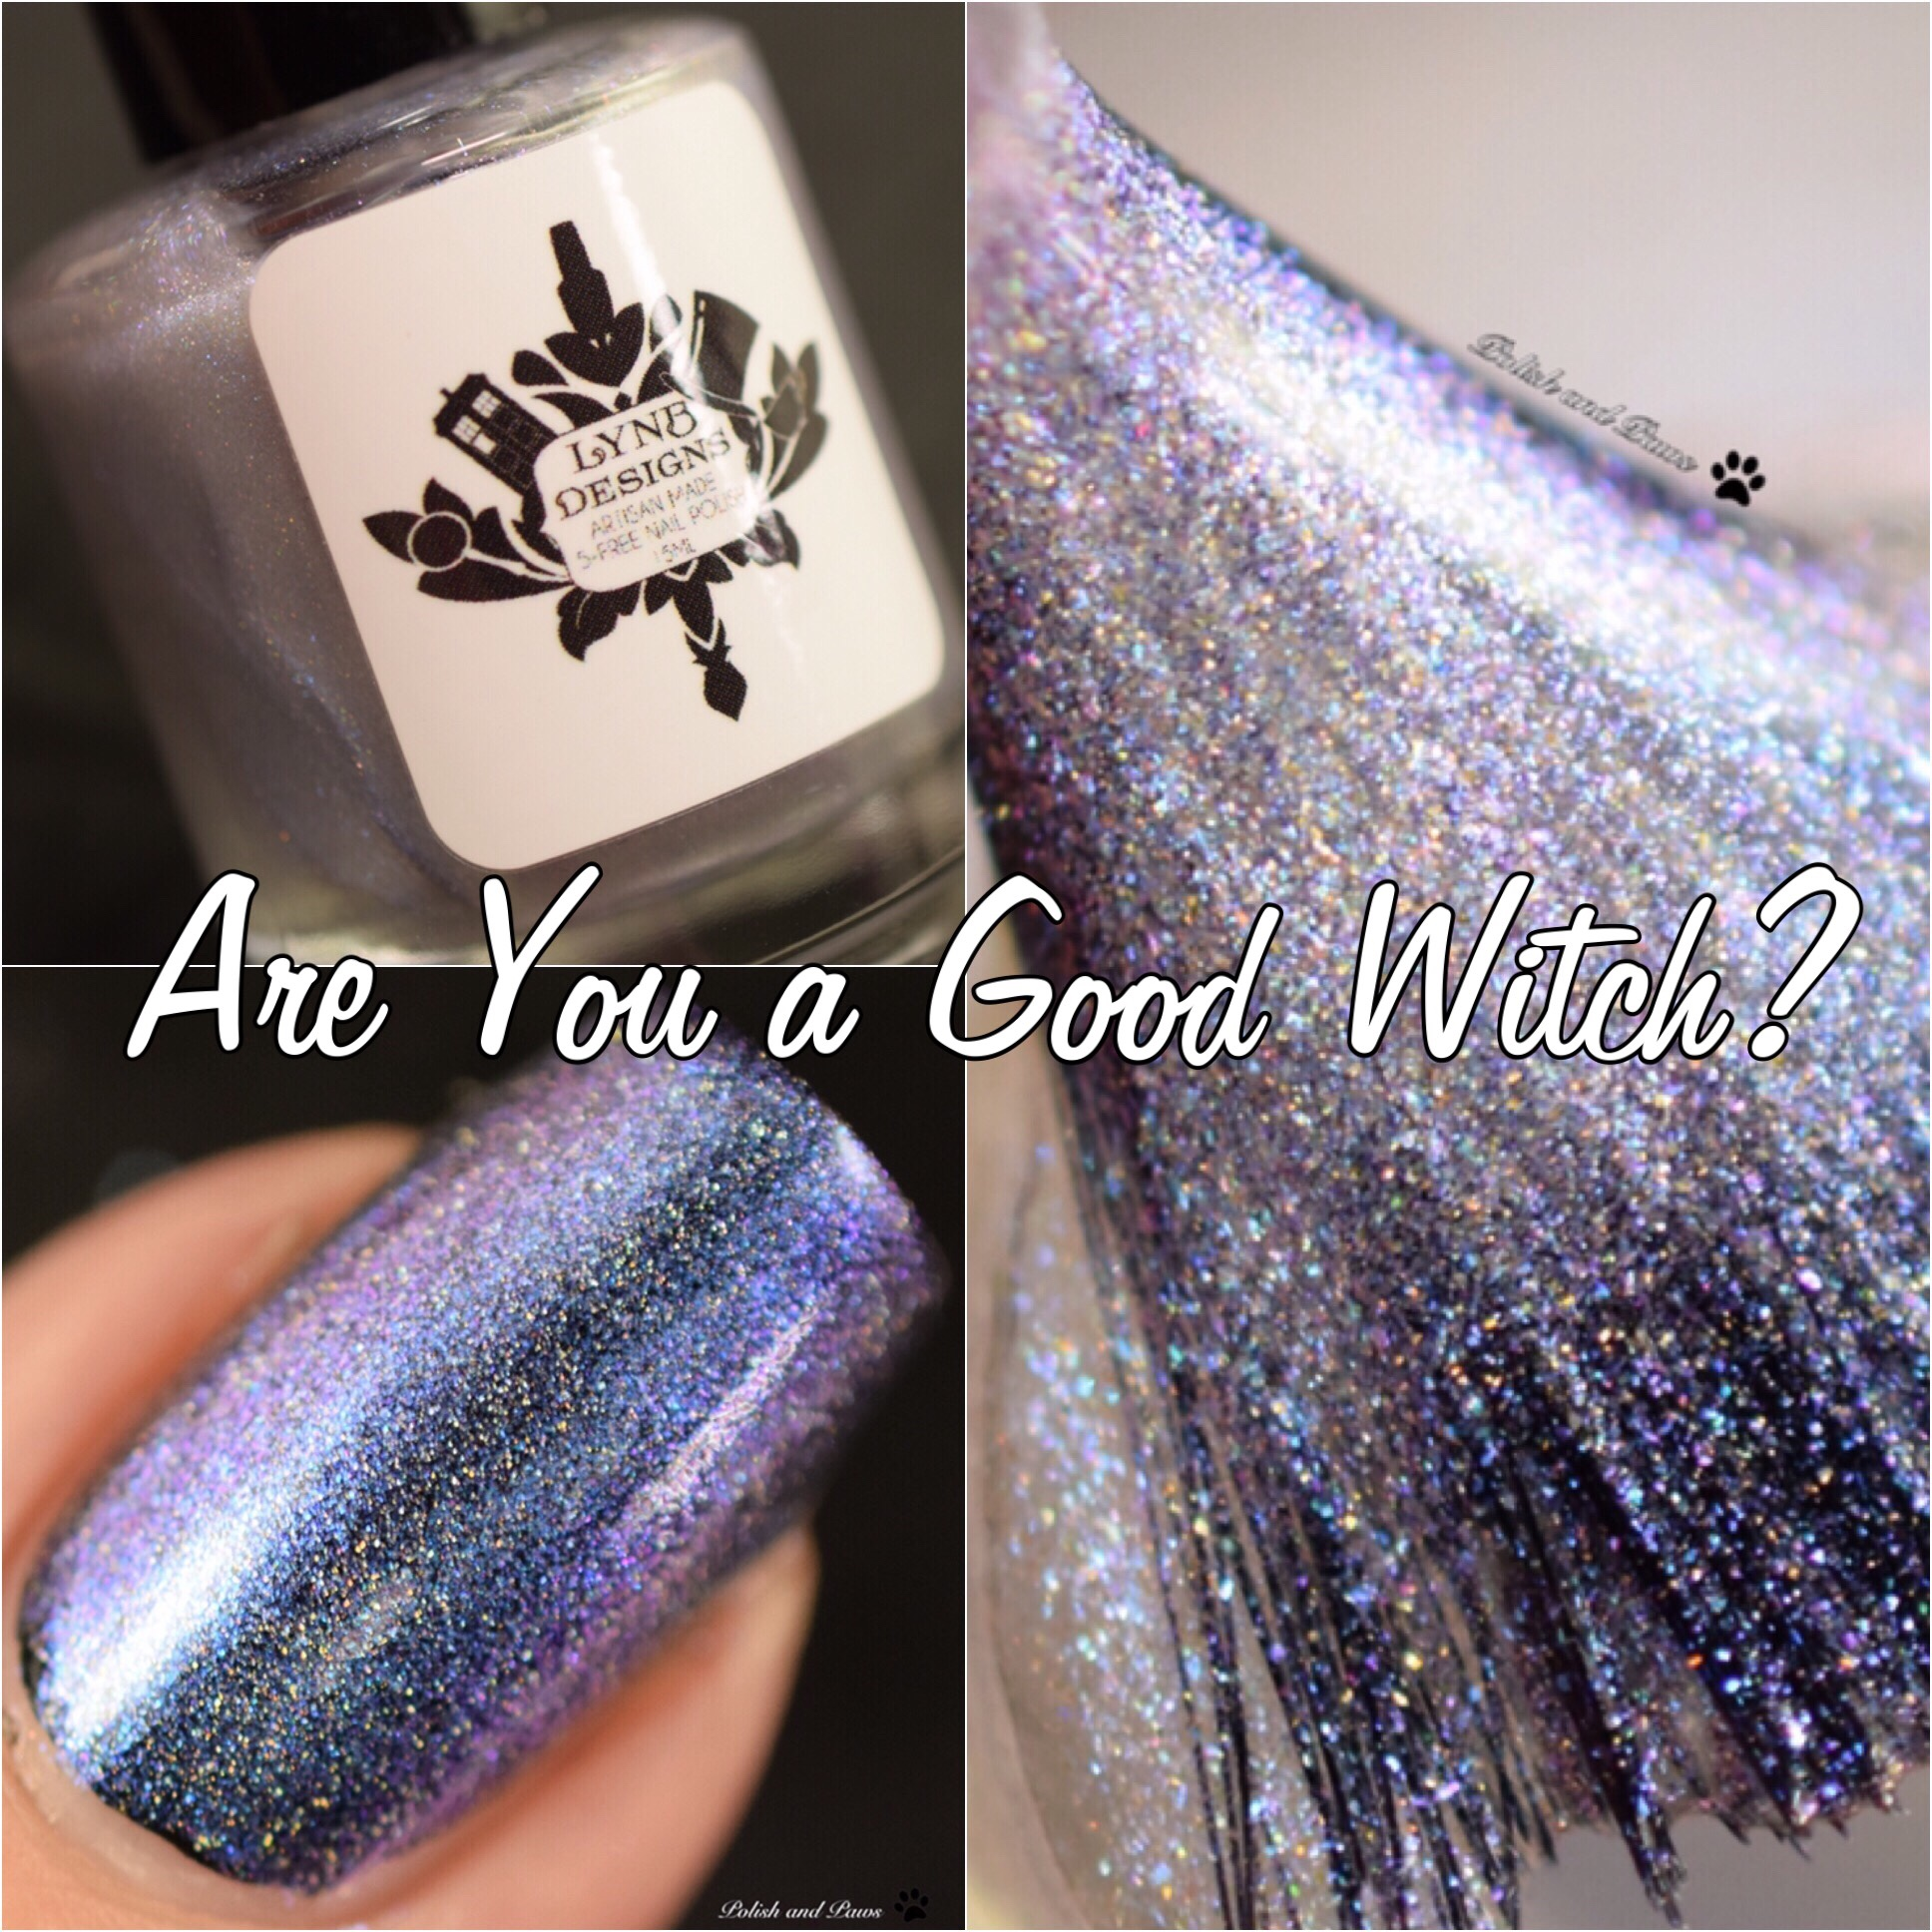 LynB Designs Are You a Good Witch?